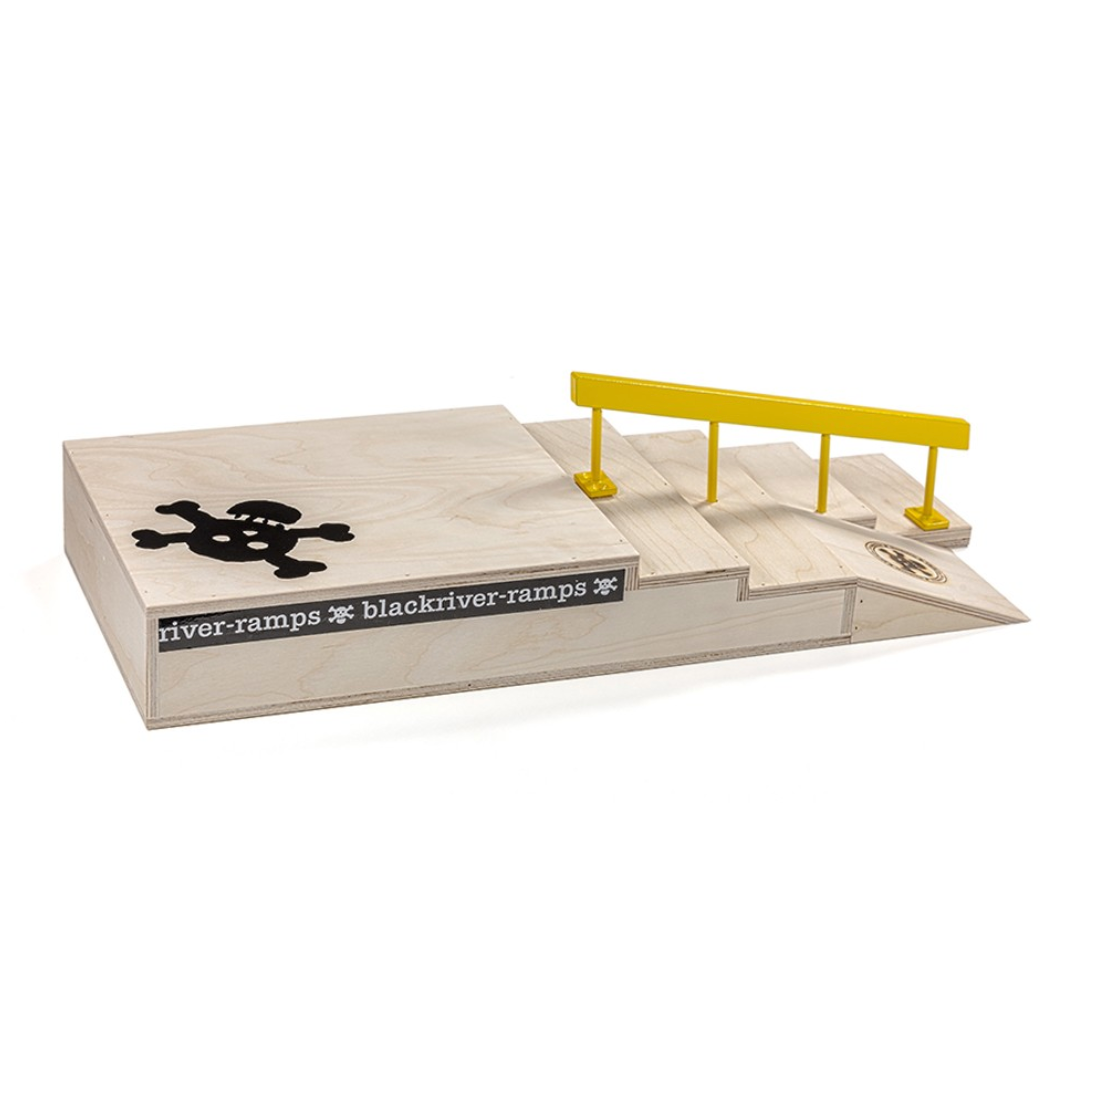 Blackriver ramps - Stairset Square Rail Yellow